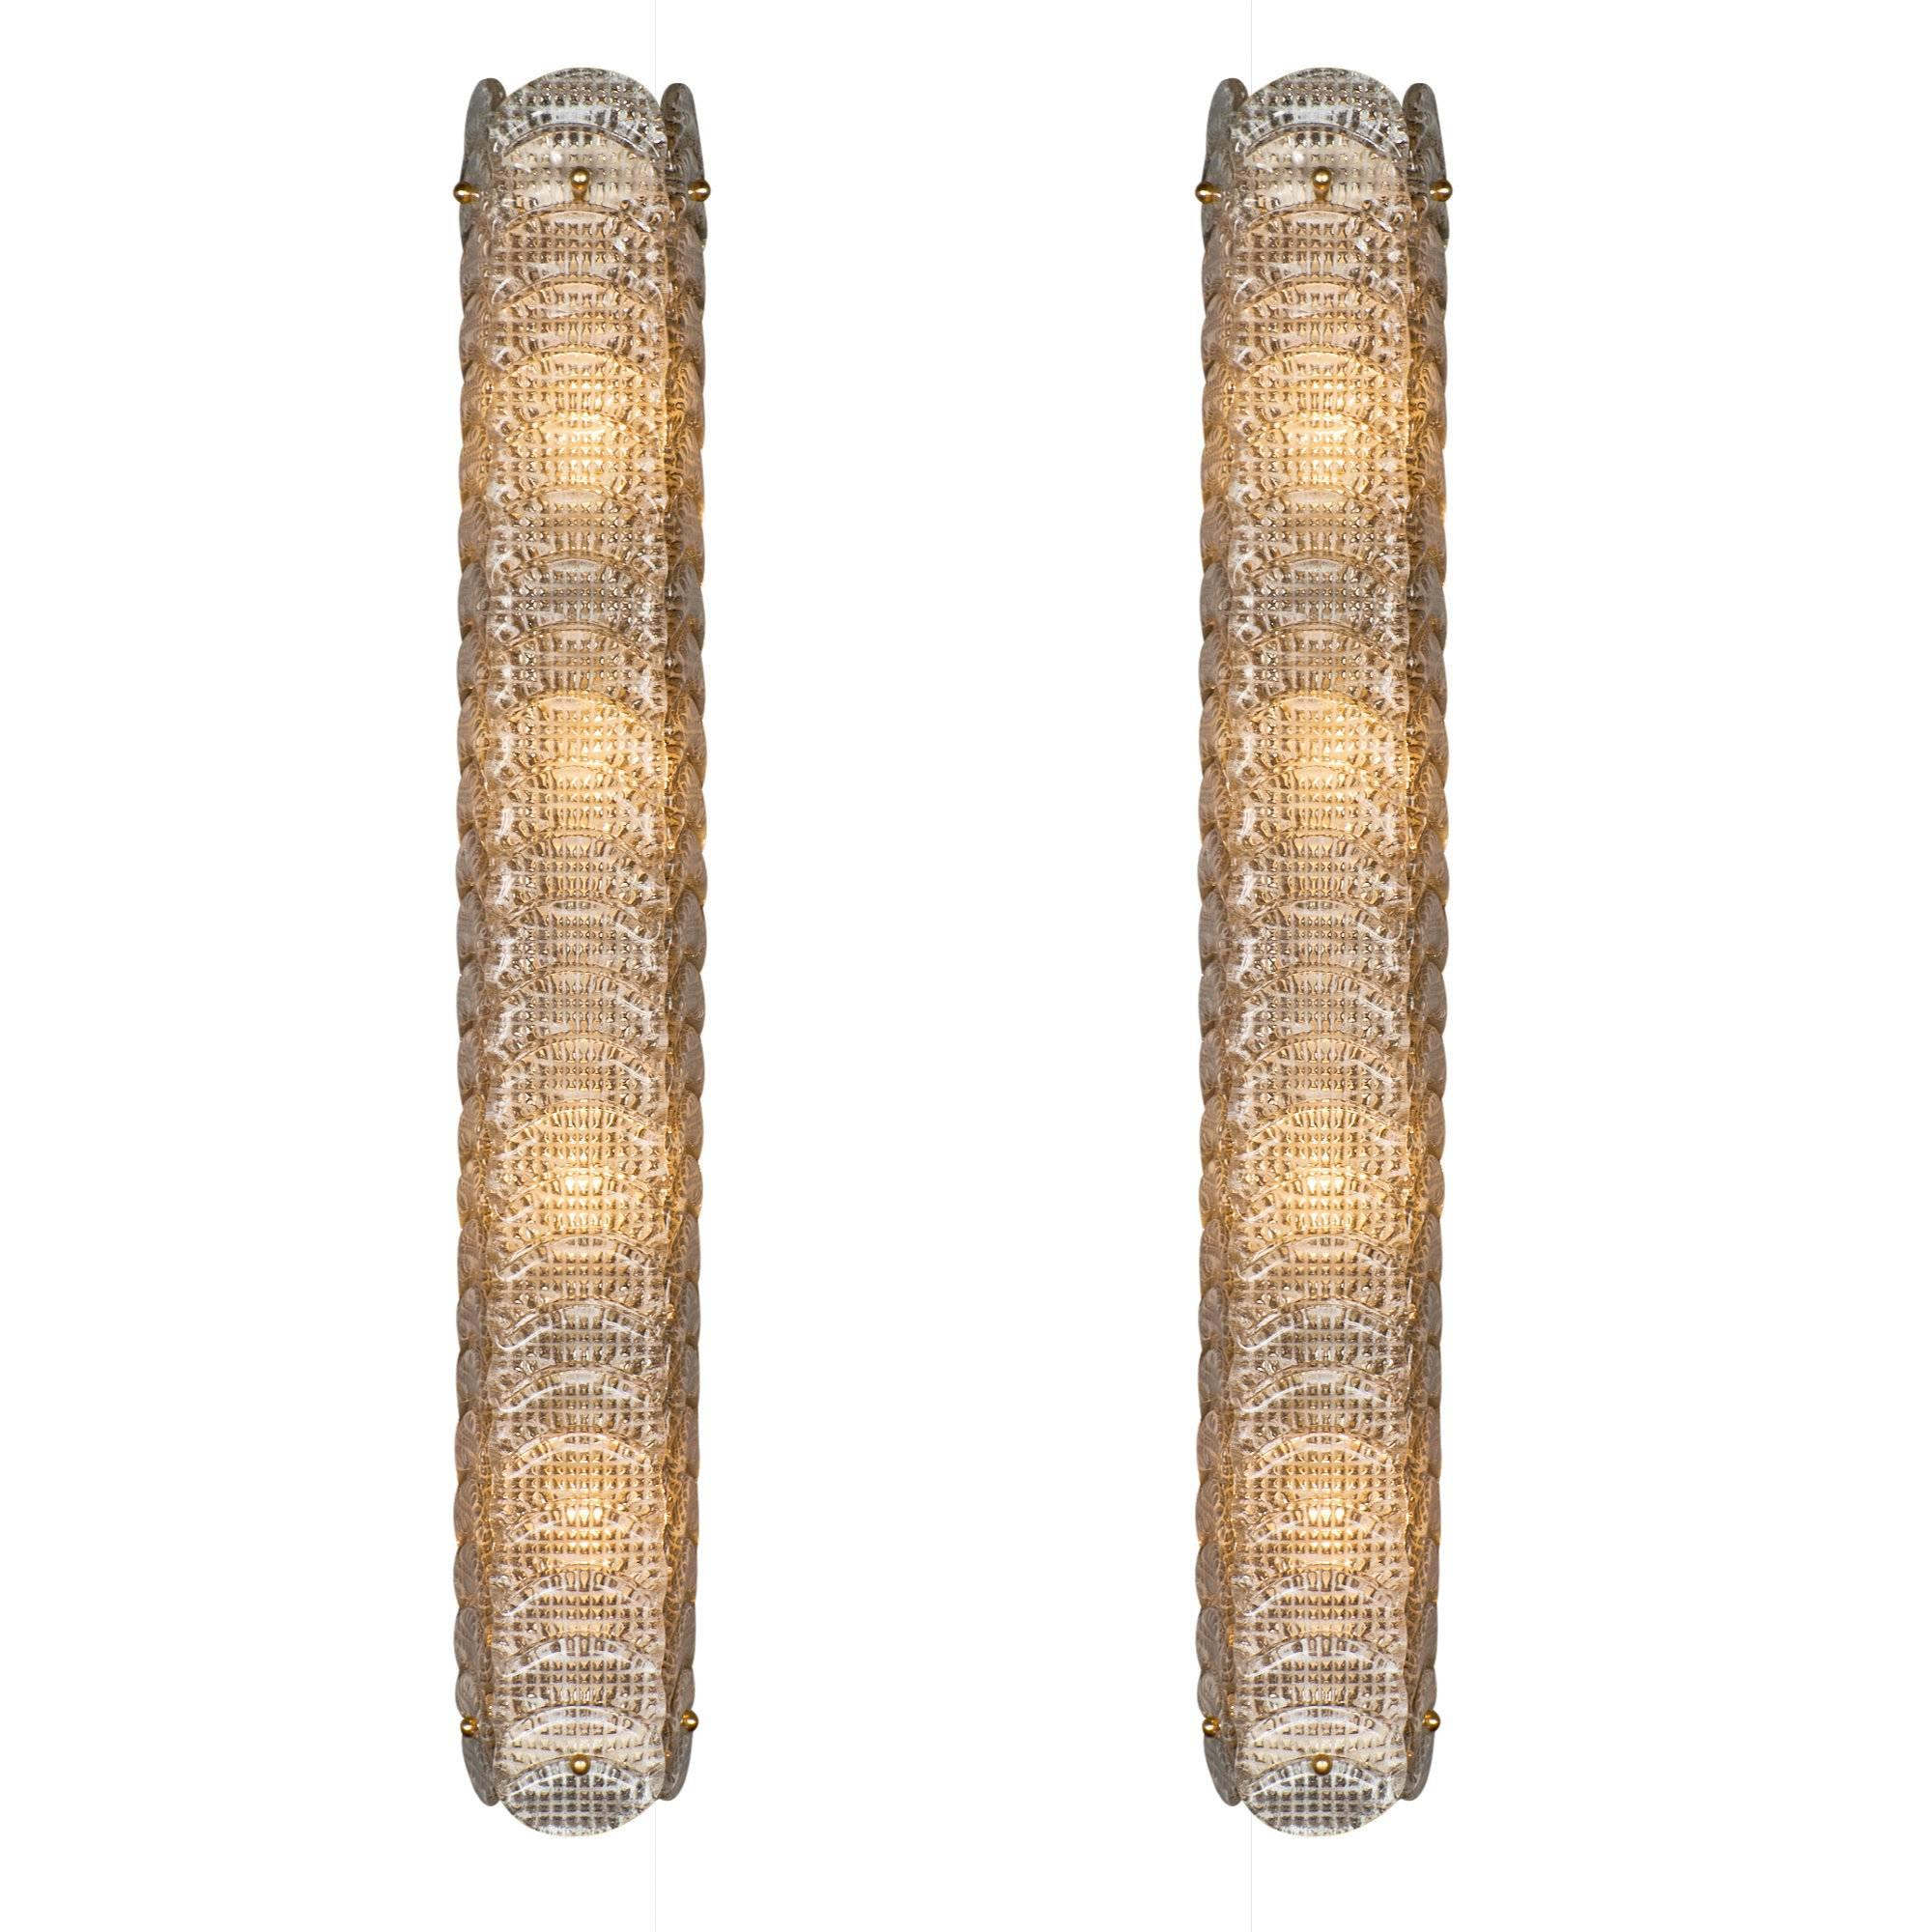 "Murano Glass Textured ""Reticello"" Sconces"